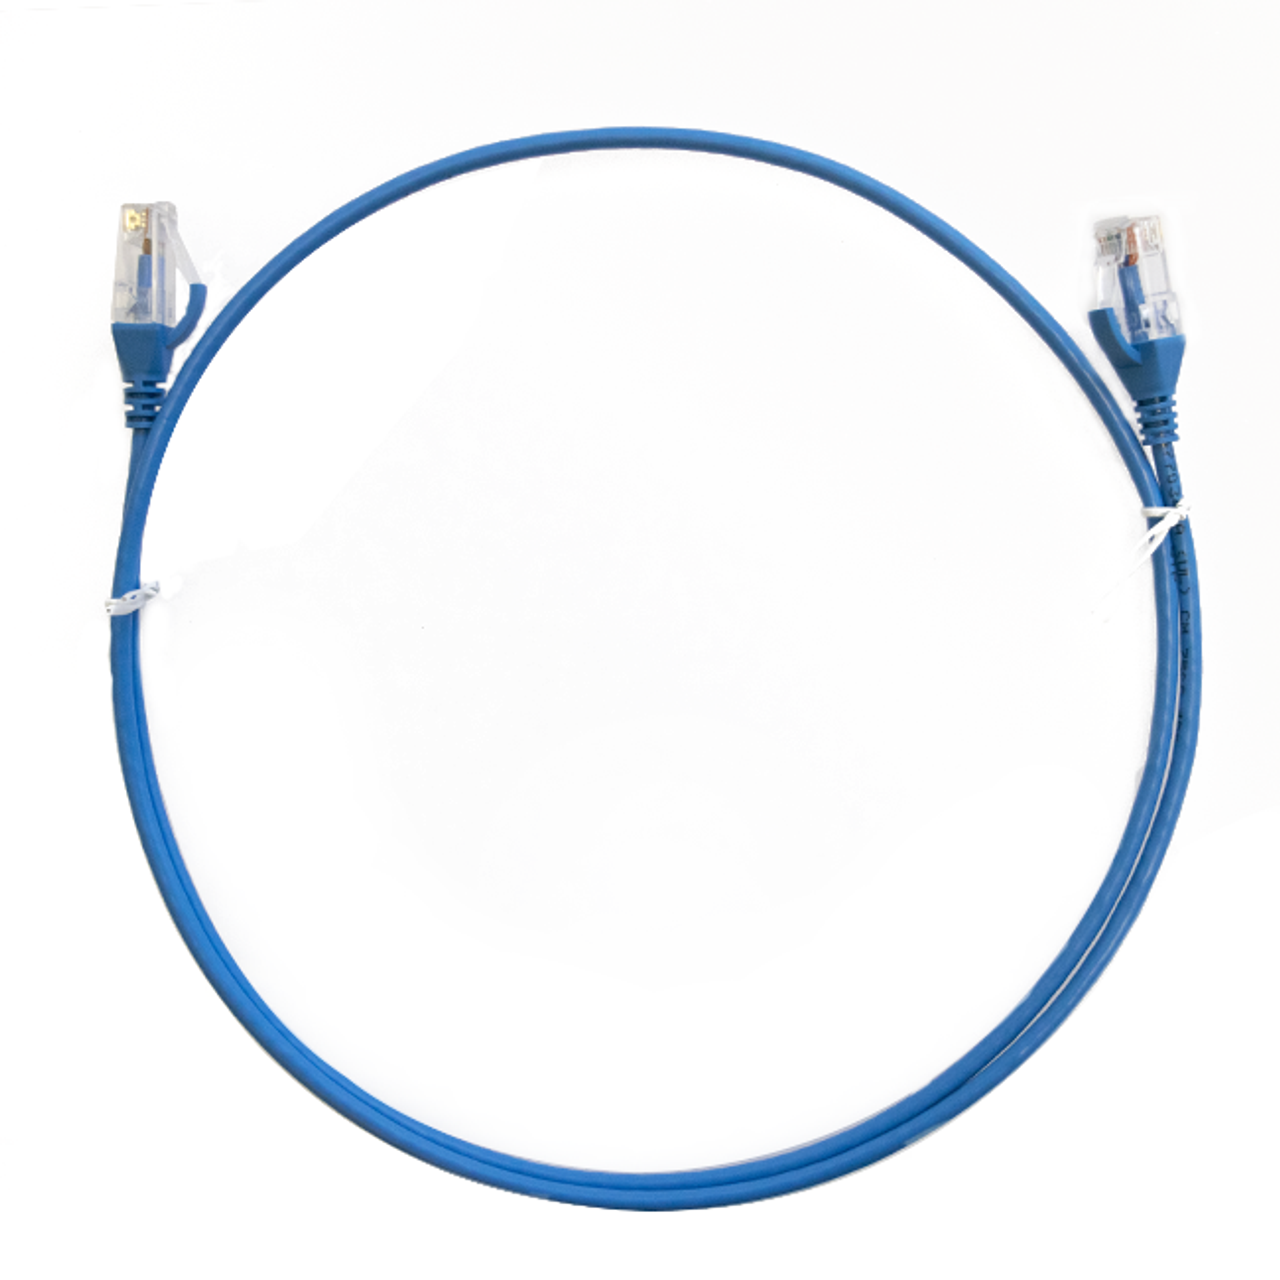 Image for 1m Cat 6 Ultra Thin LSZH Ethernet Network Cable. Blue CX Computer Superstore